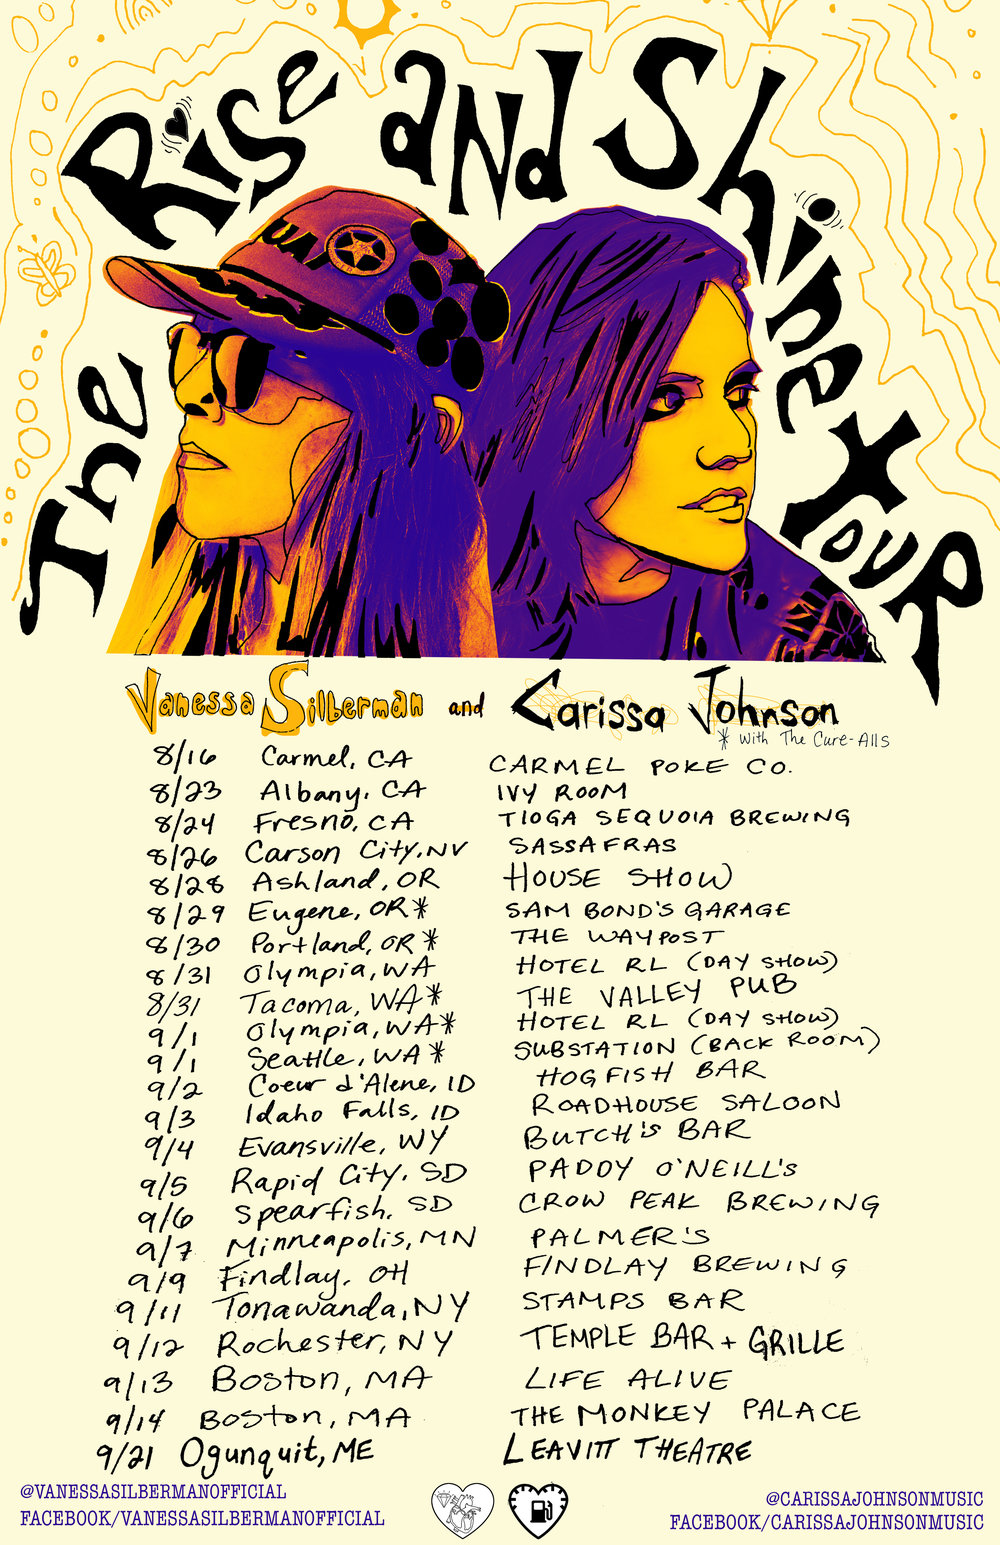 Carissa Johnson and Vanessa Silberman Tour 2018